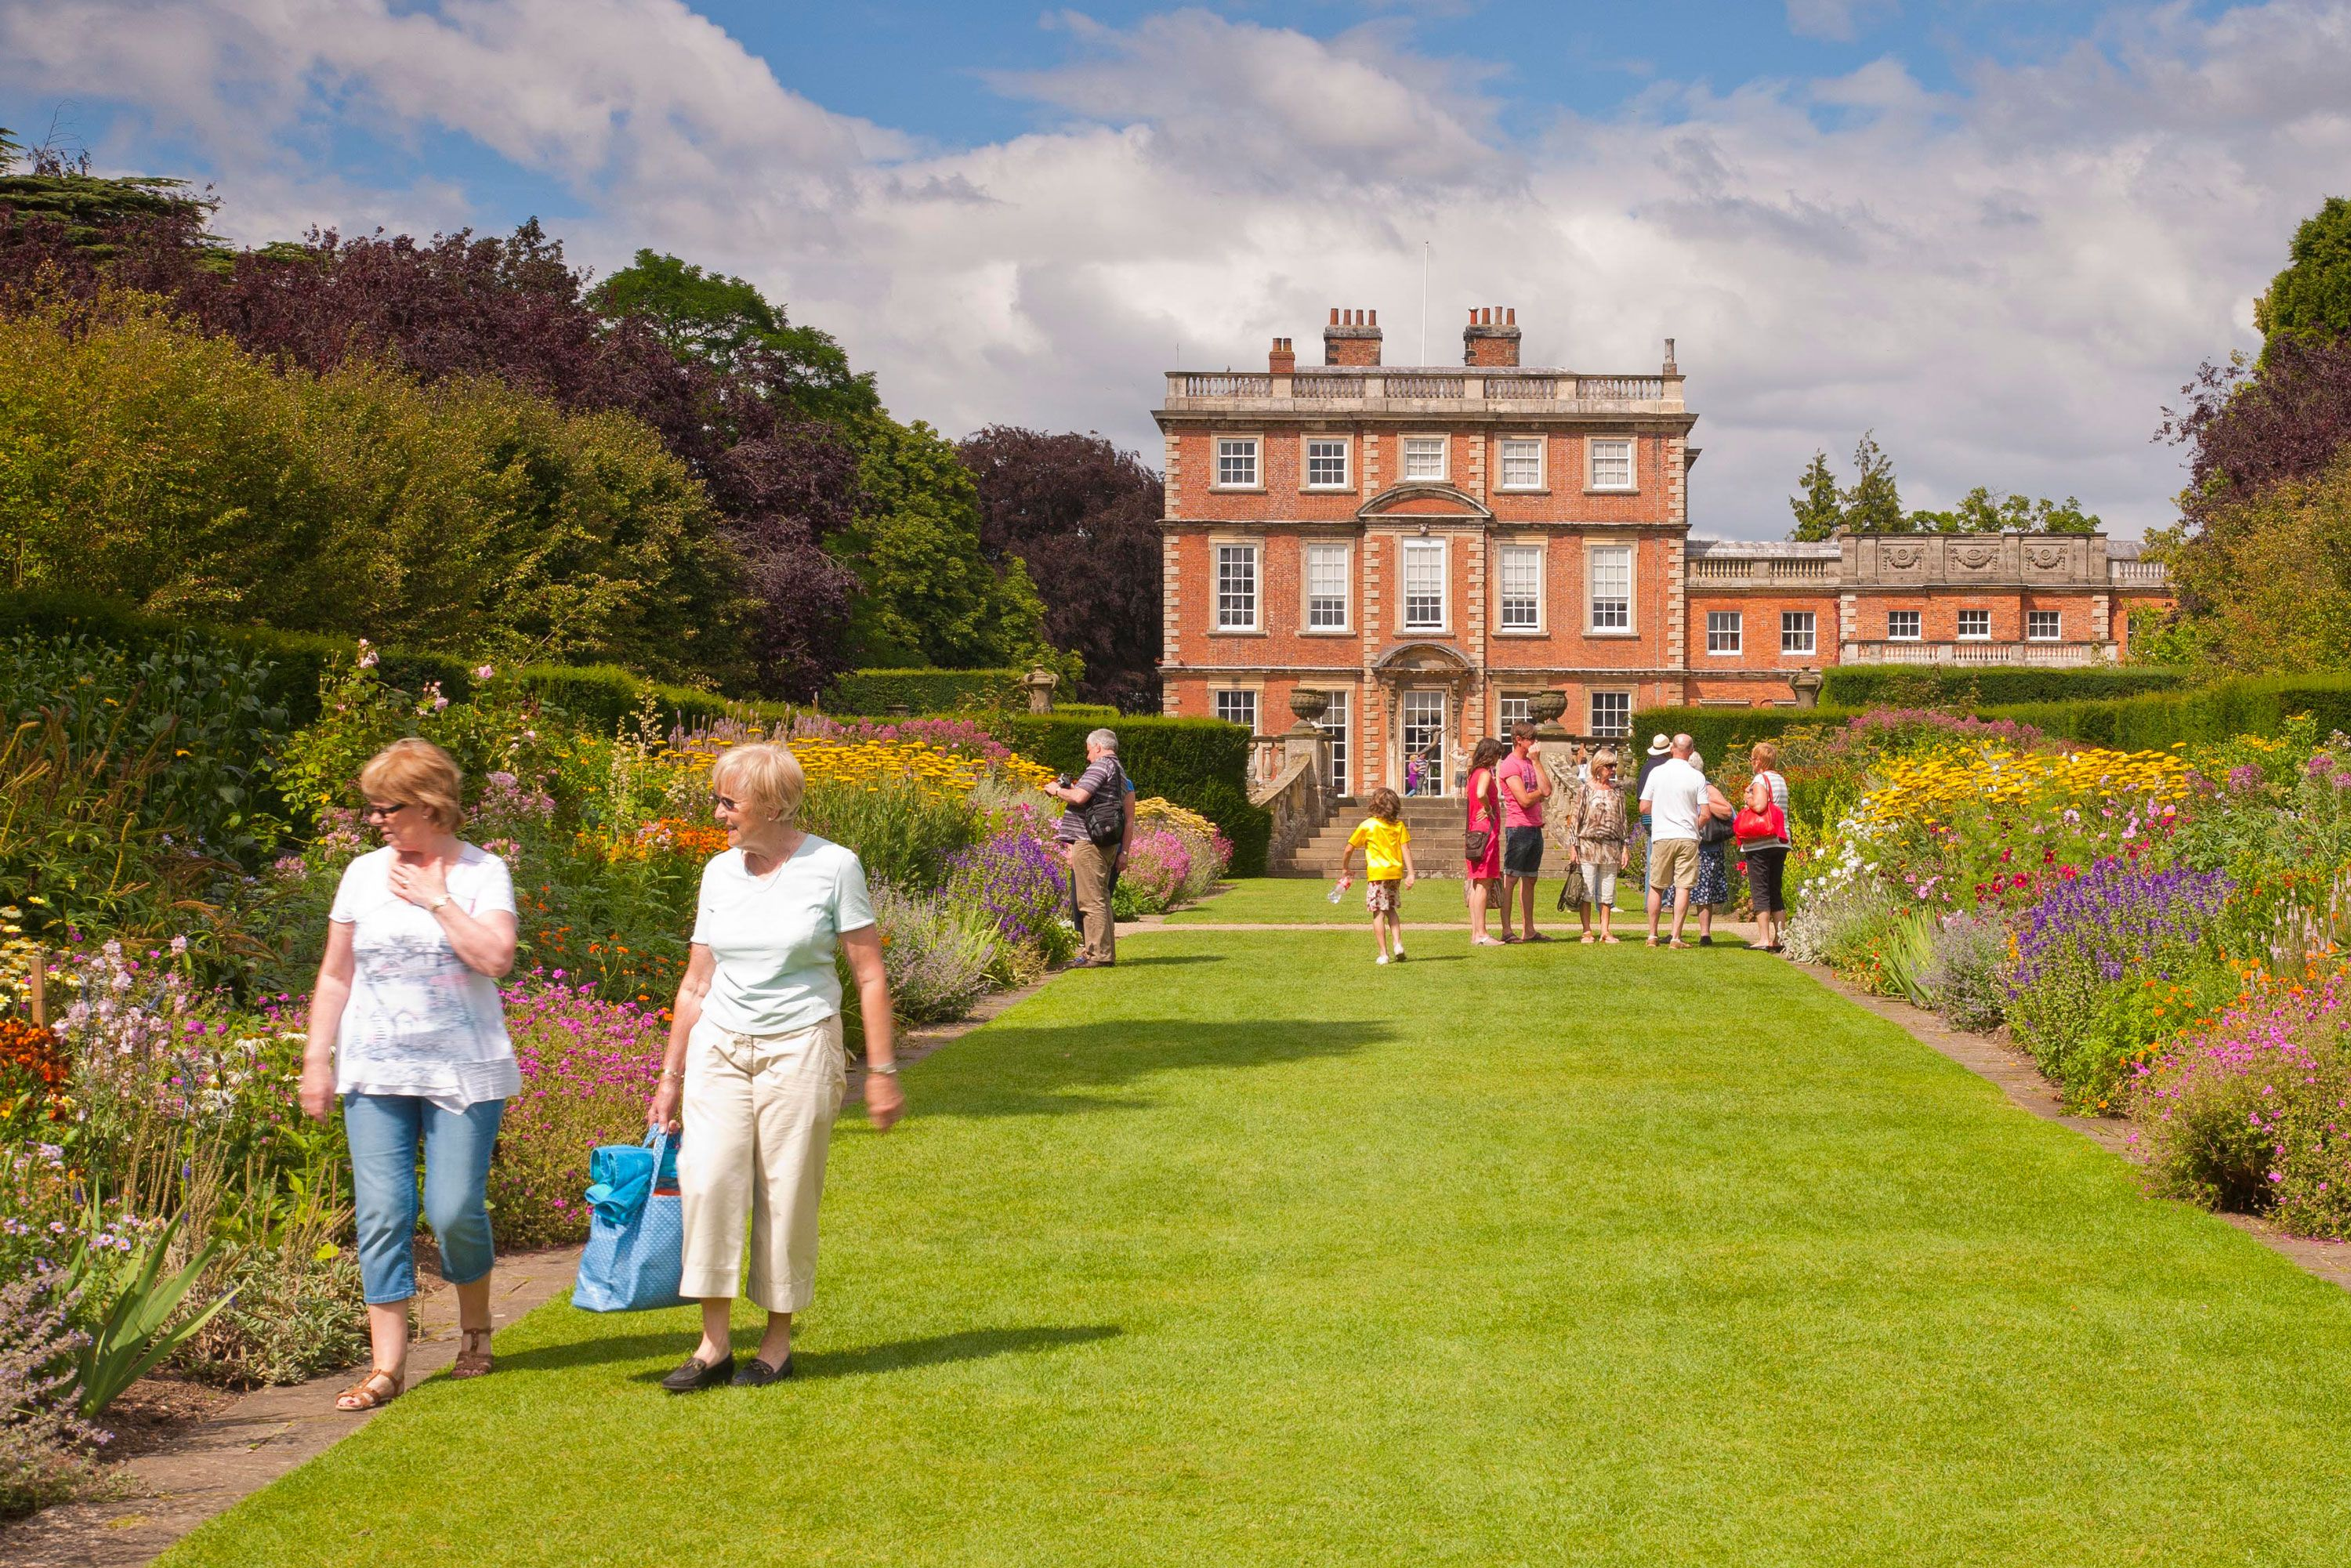 The long walk up to Newby Hall, showing visitors admiring the flowerbeds.